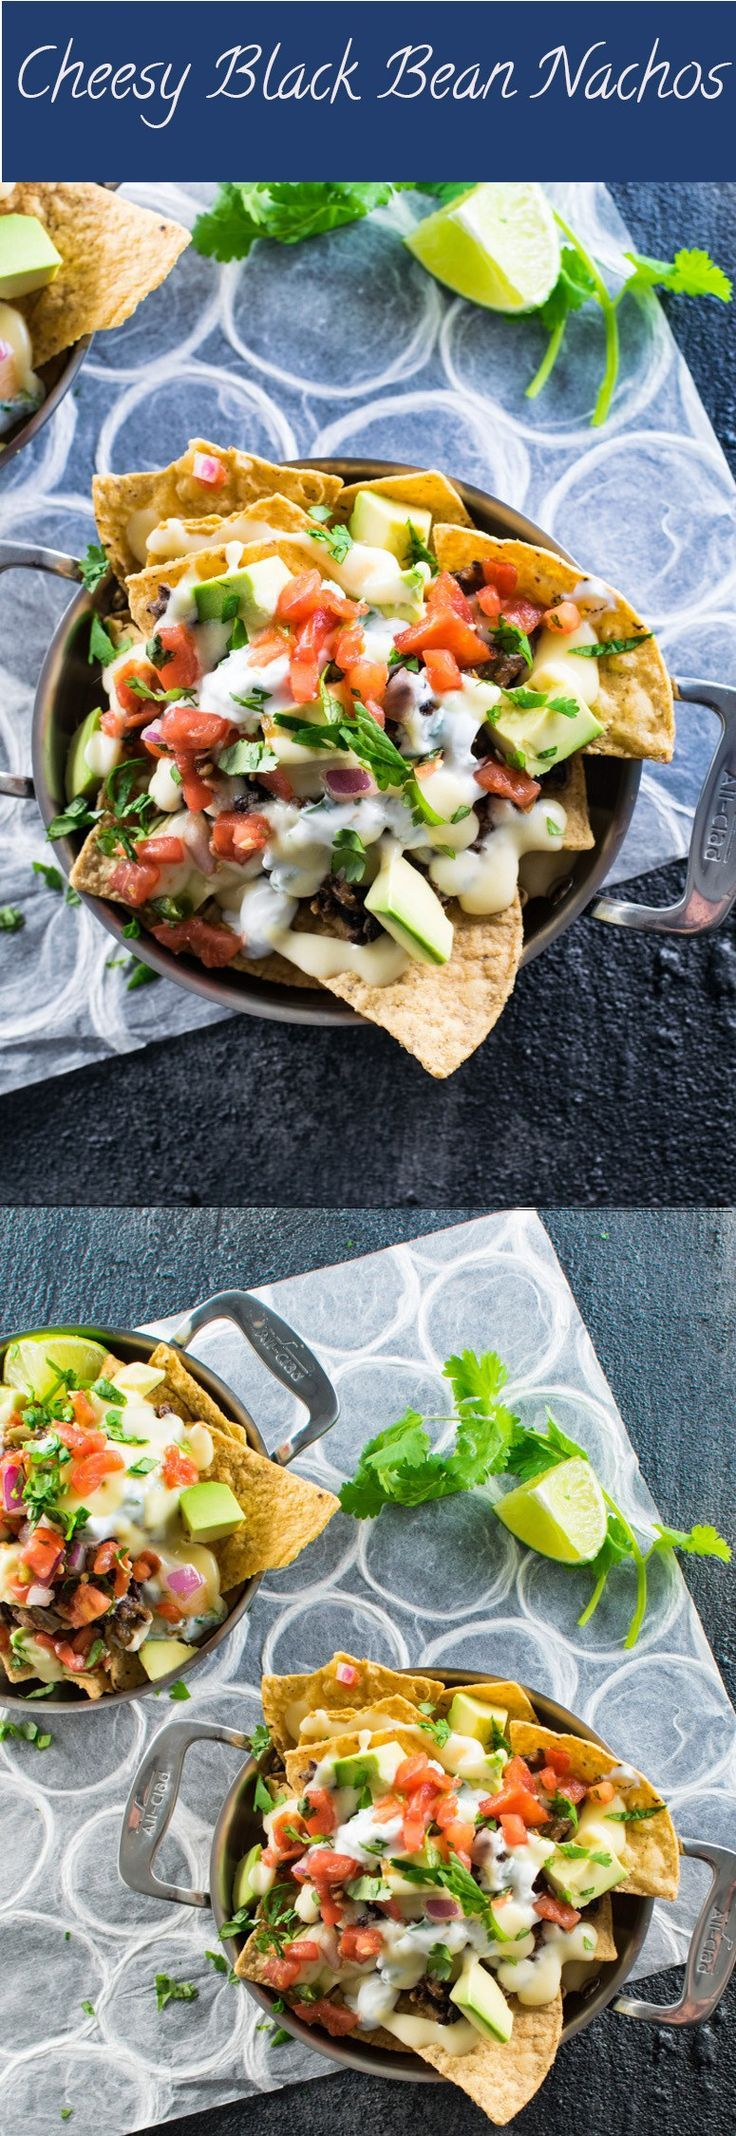 Cheesy Black Bean Nachos   These vegetarian black bean nachos are topped with a creamy cheese sauce to ensure tasty goodness in every bite!